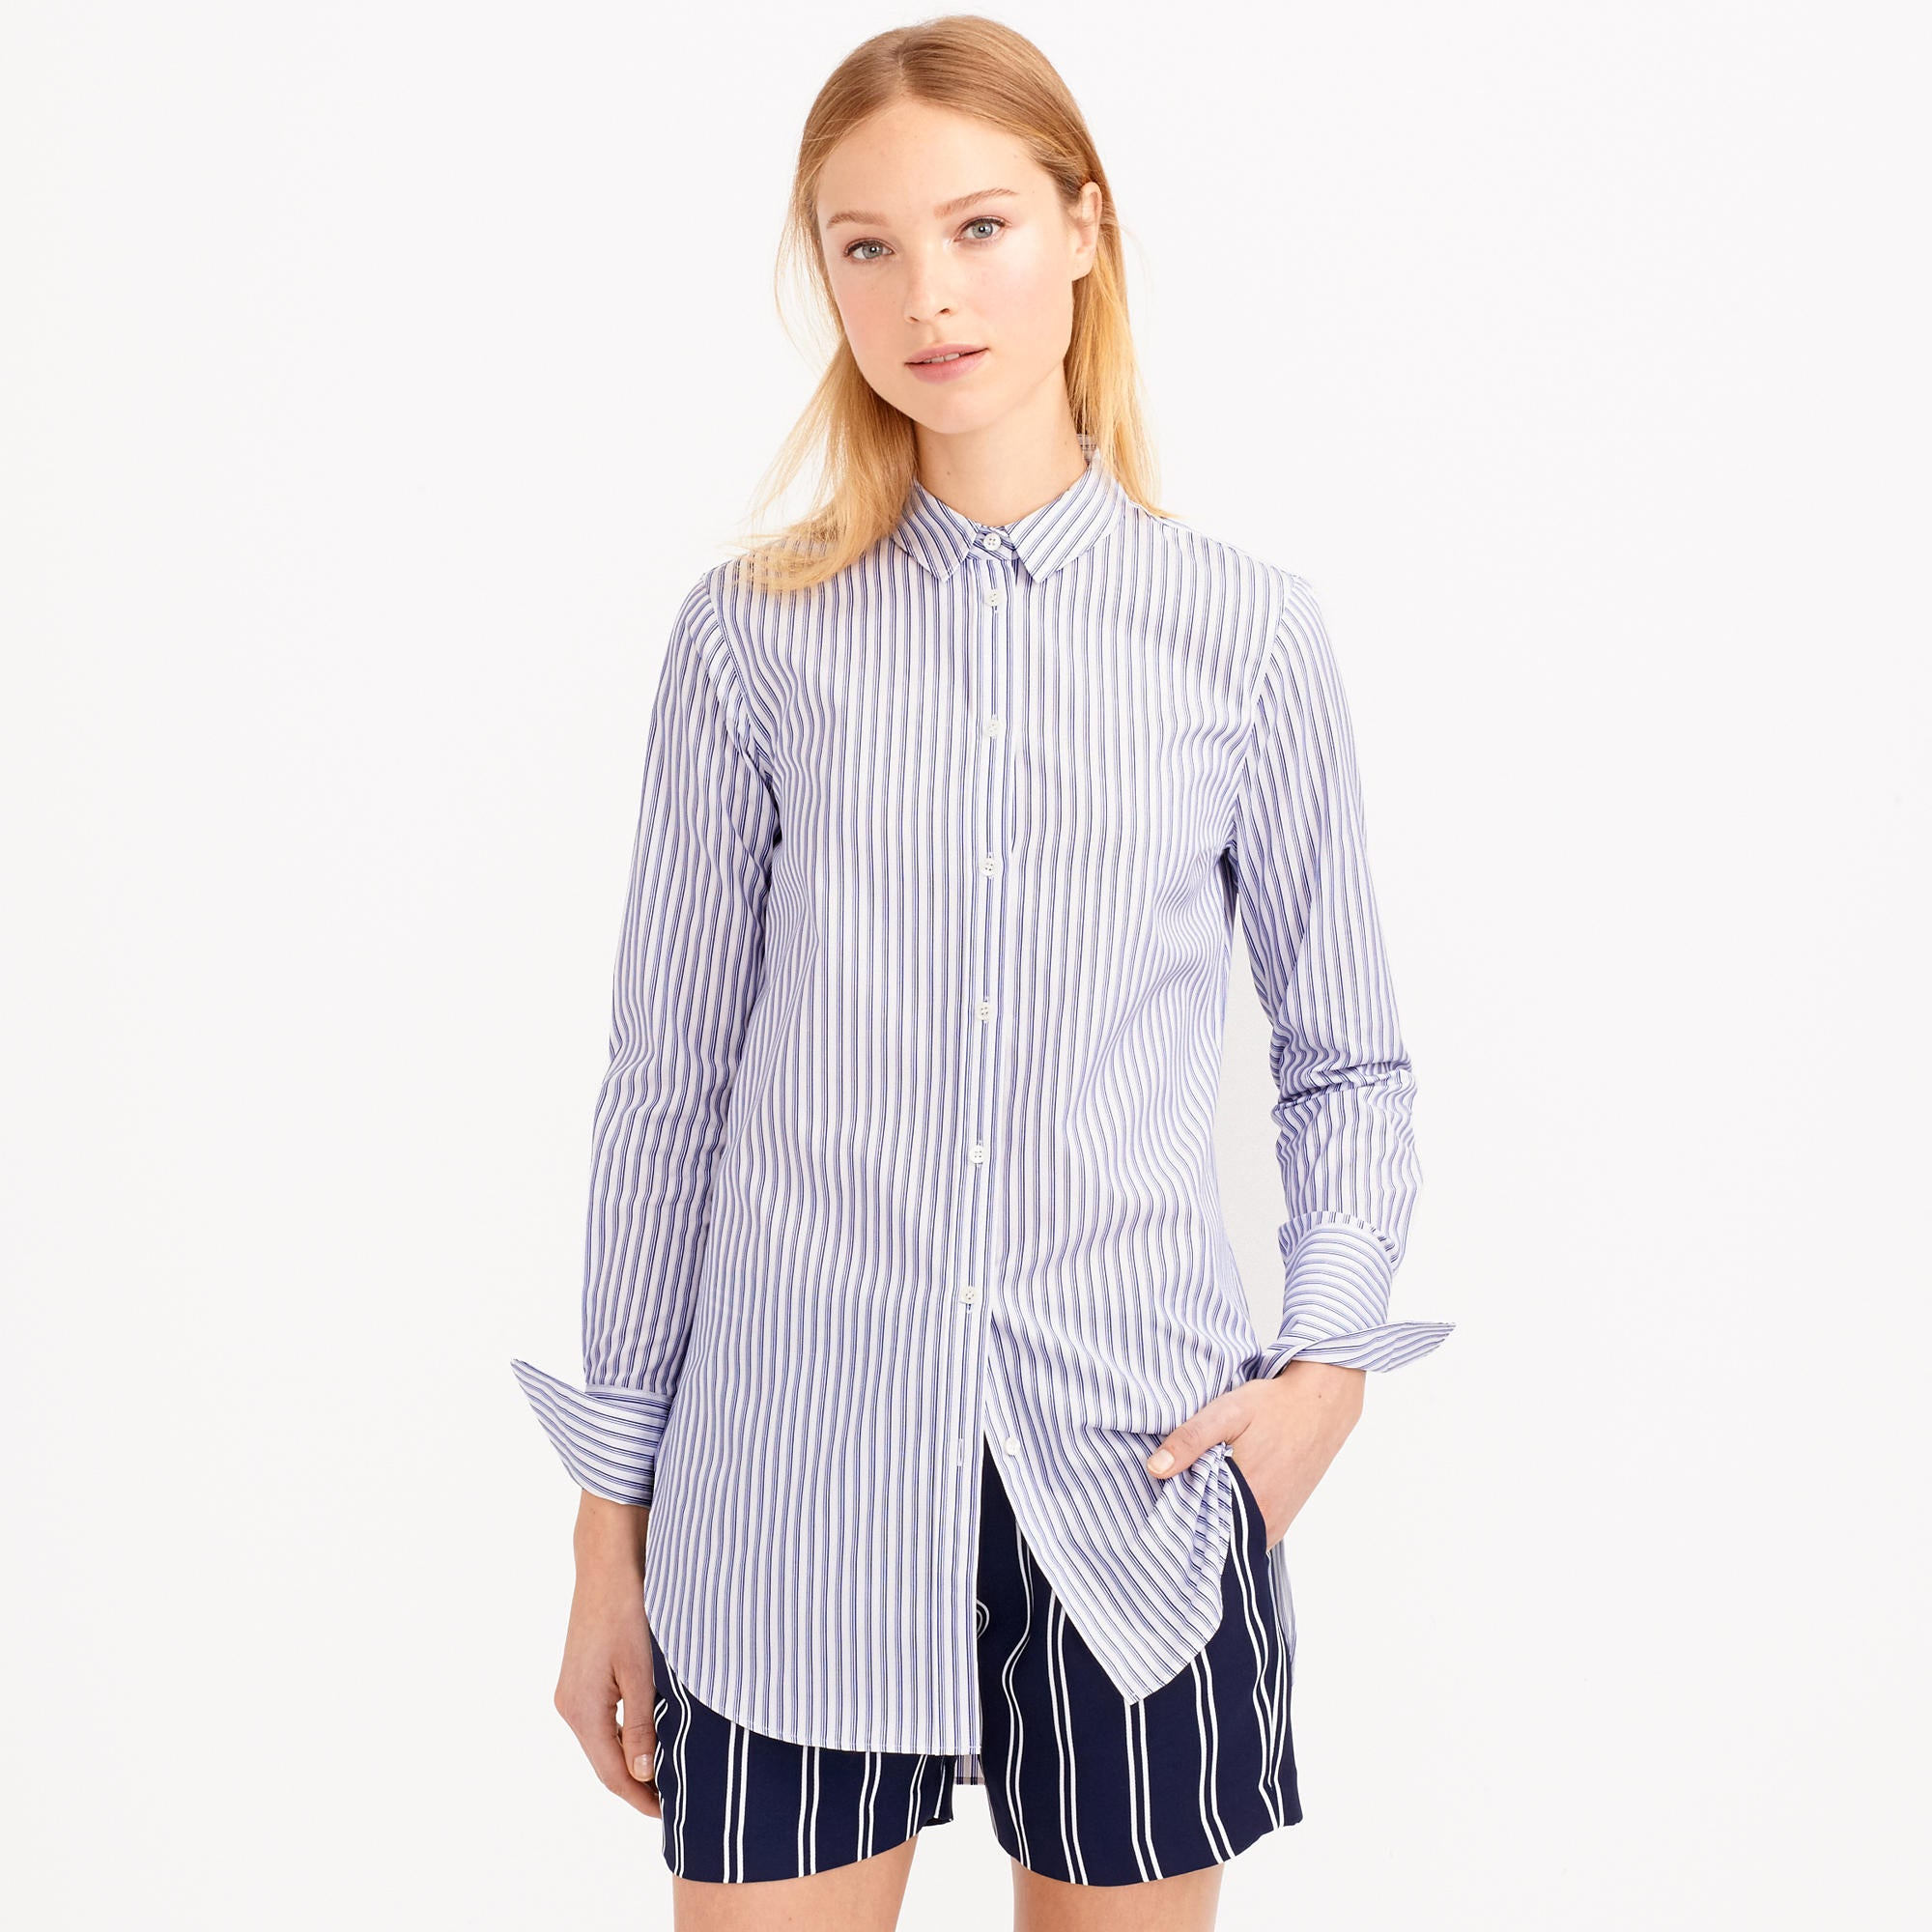 Stripes are also going to be huge this season.  Don't be afraid to for stripes on stripes. Above, J Crew Endless Shirt in Black Stripe.